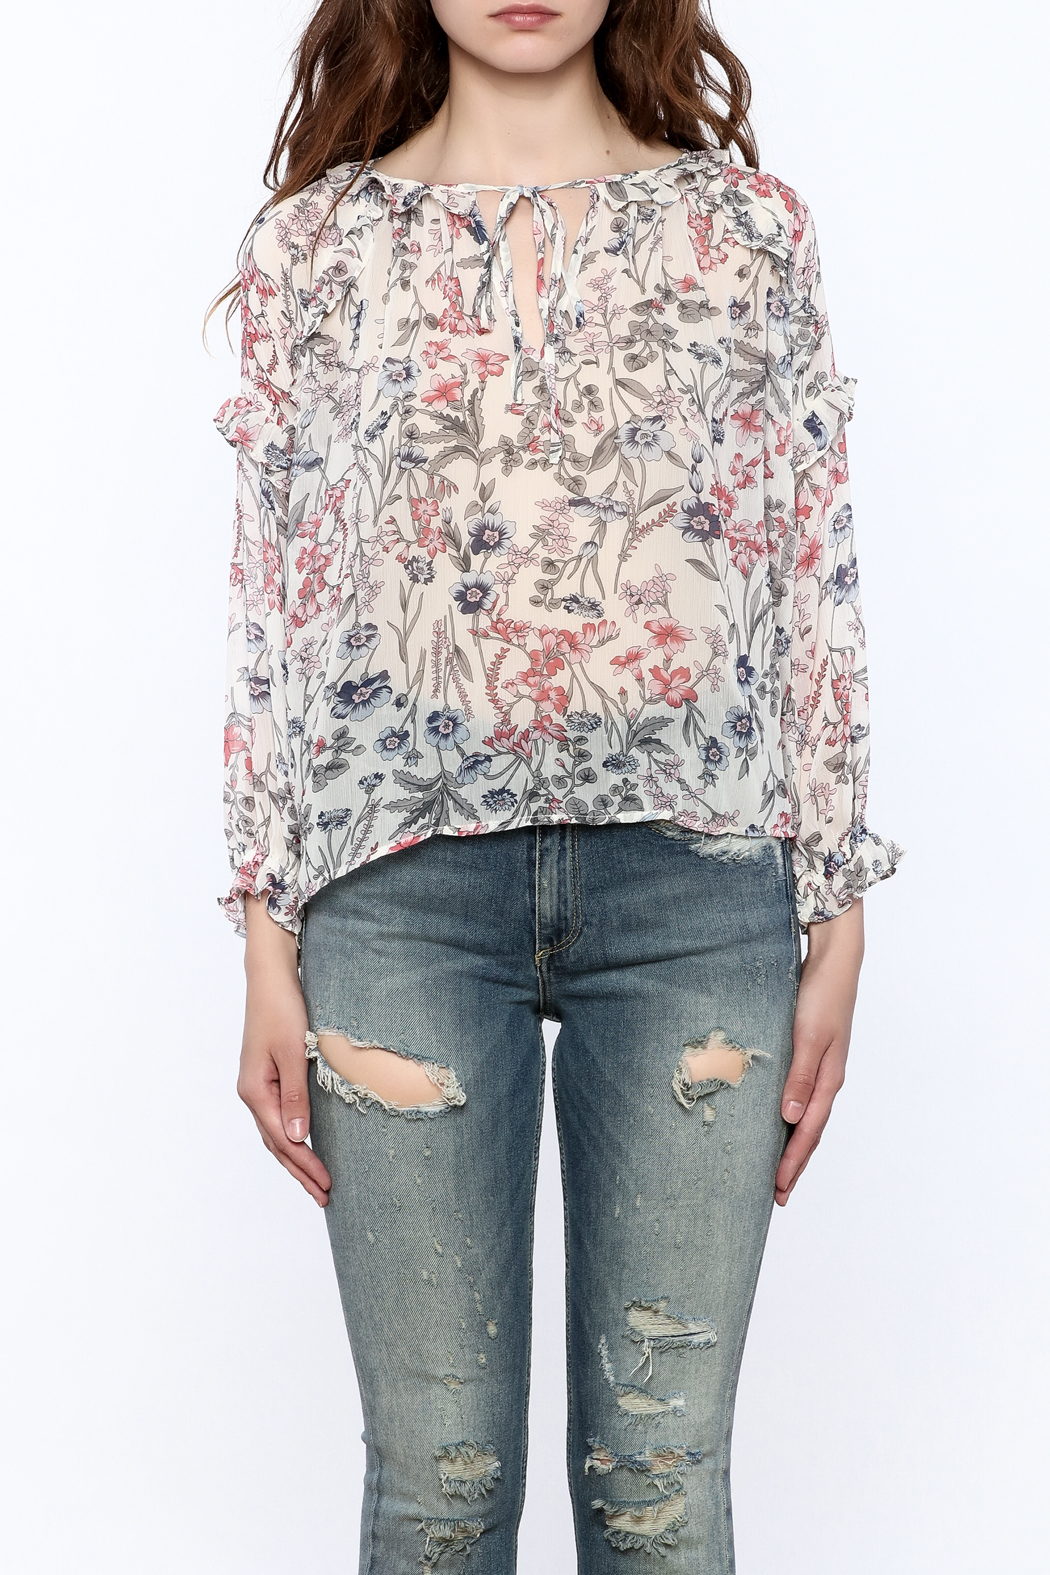 re:named Lightweight Floral Print Blouse - Side Cropped Image